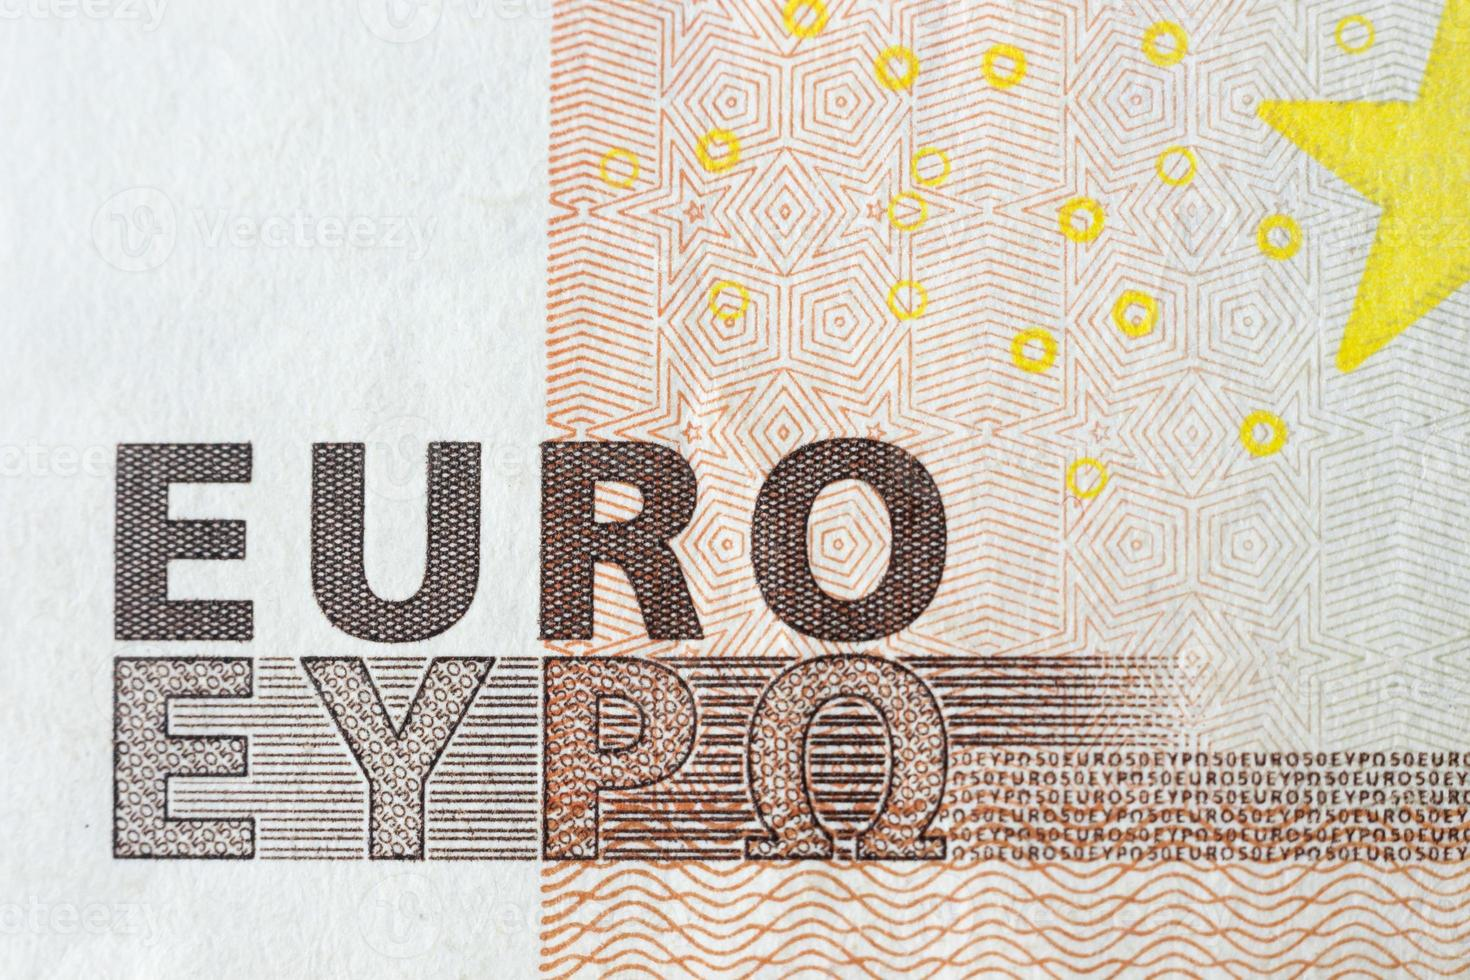 Euro banknotes, detailed text on a new fifty euro banknotes photo